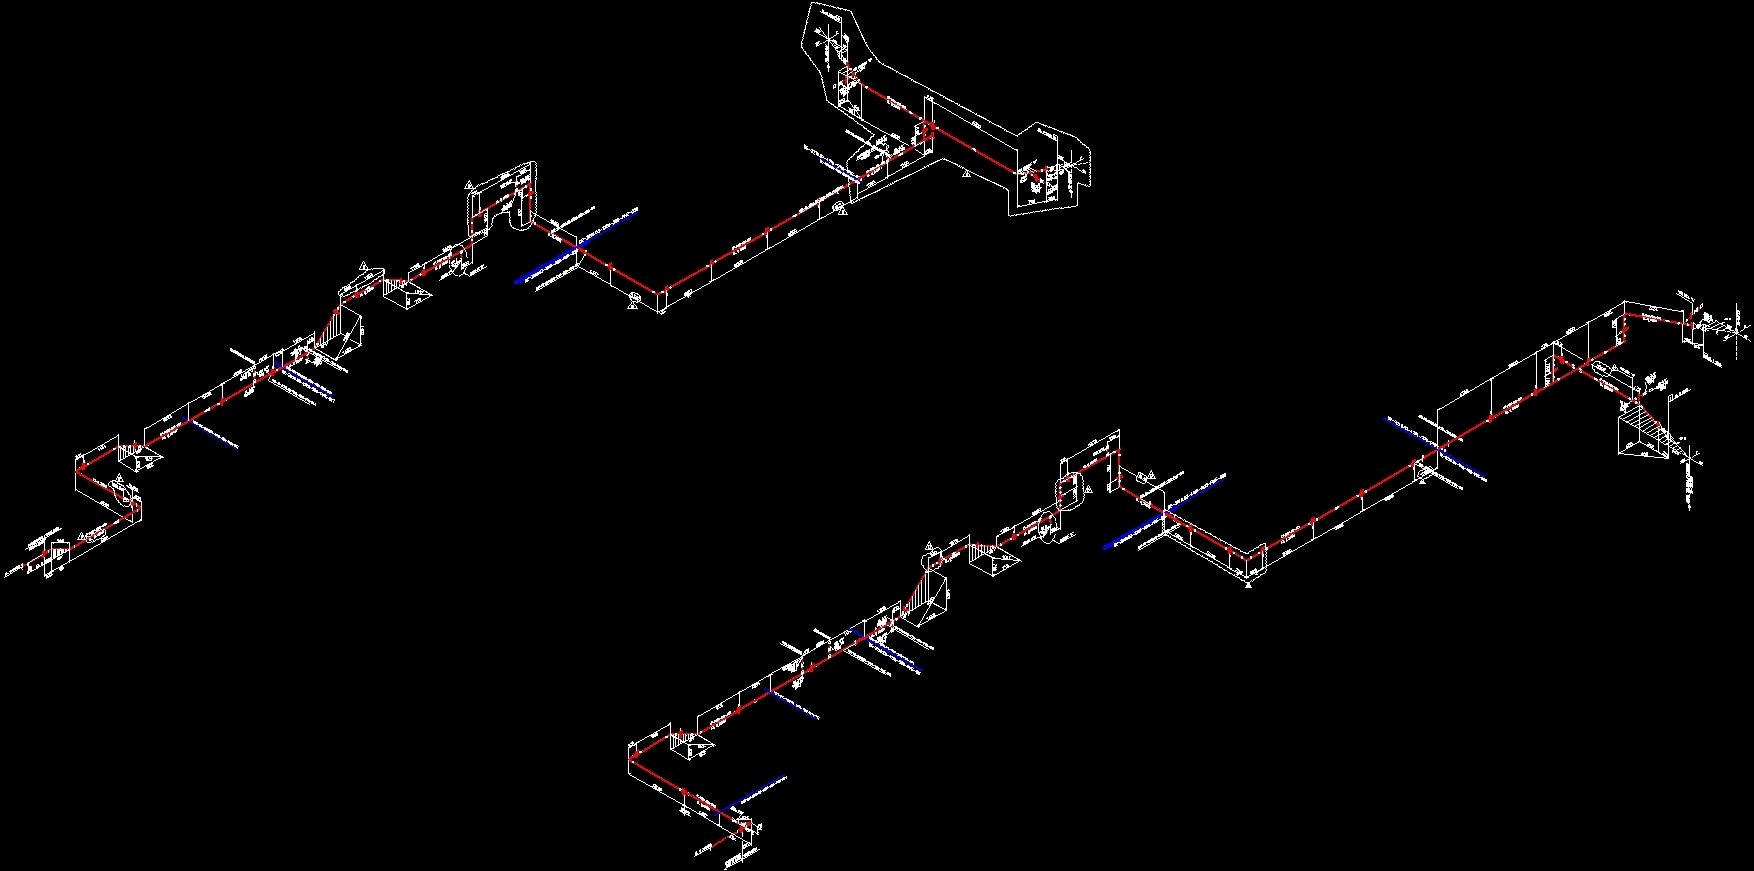 Piping Isometric DWG Block for AutoCAD